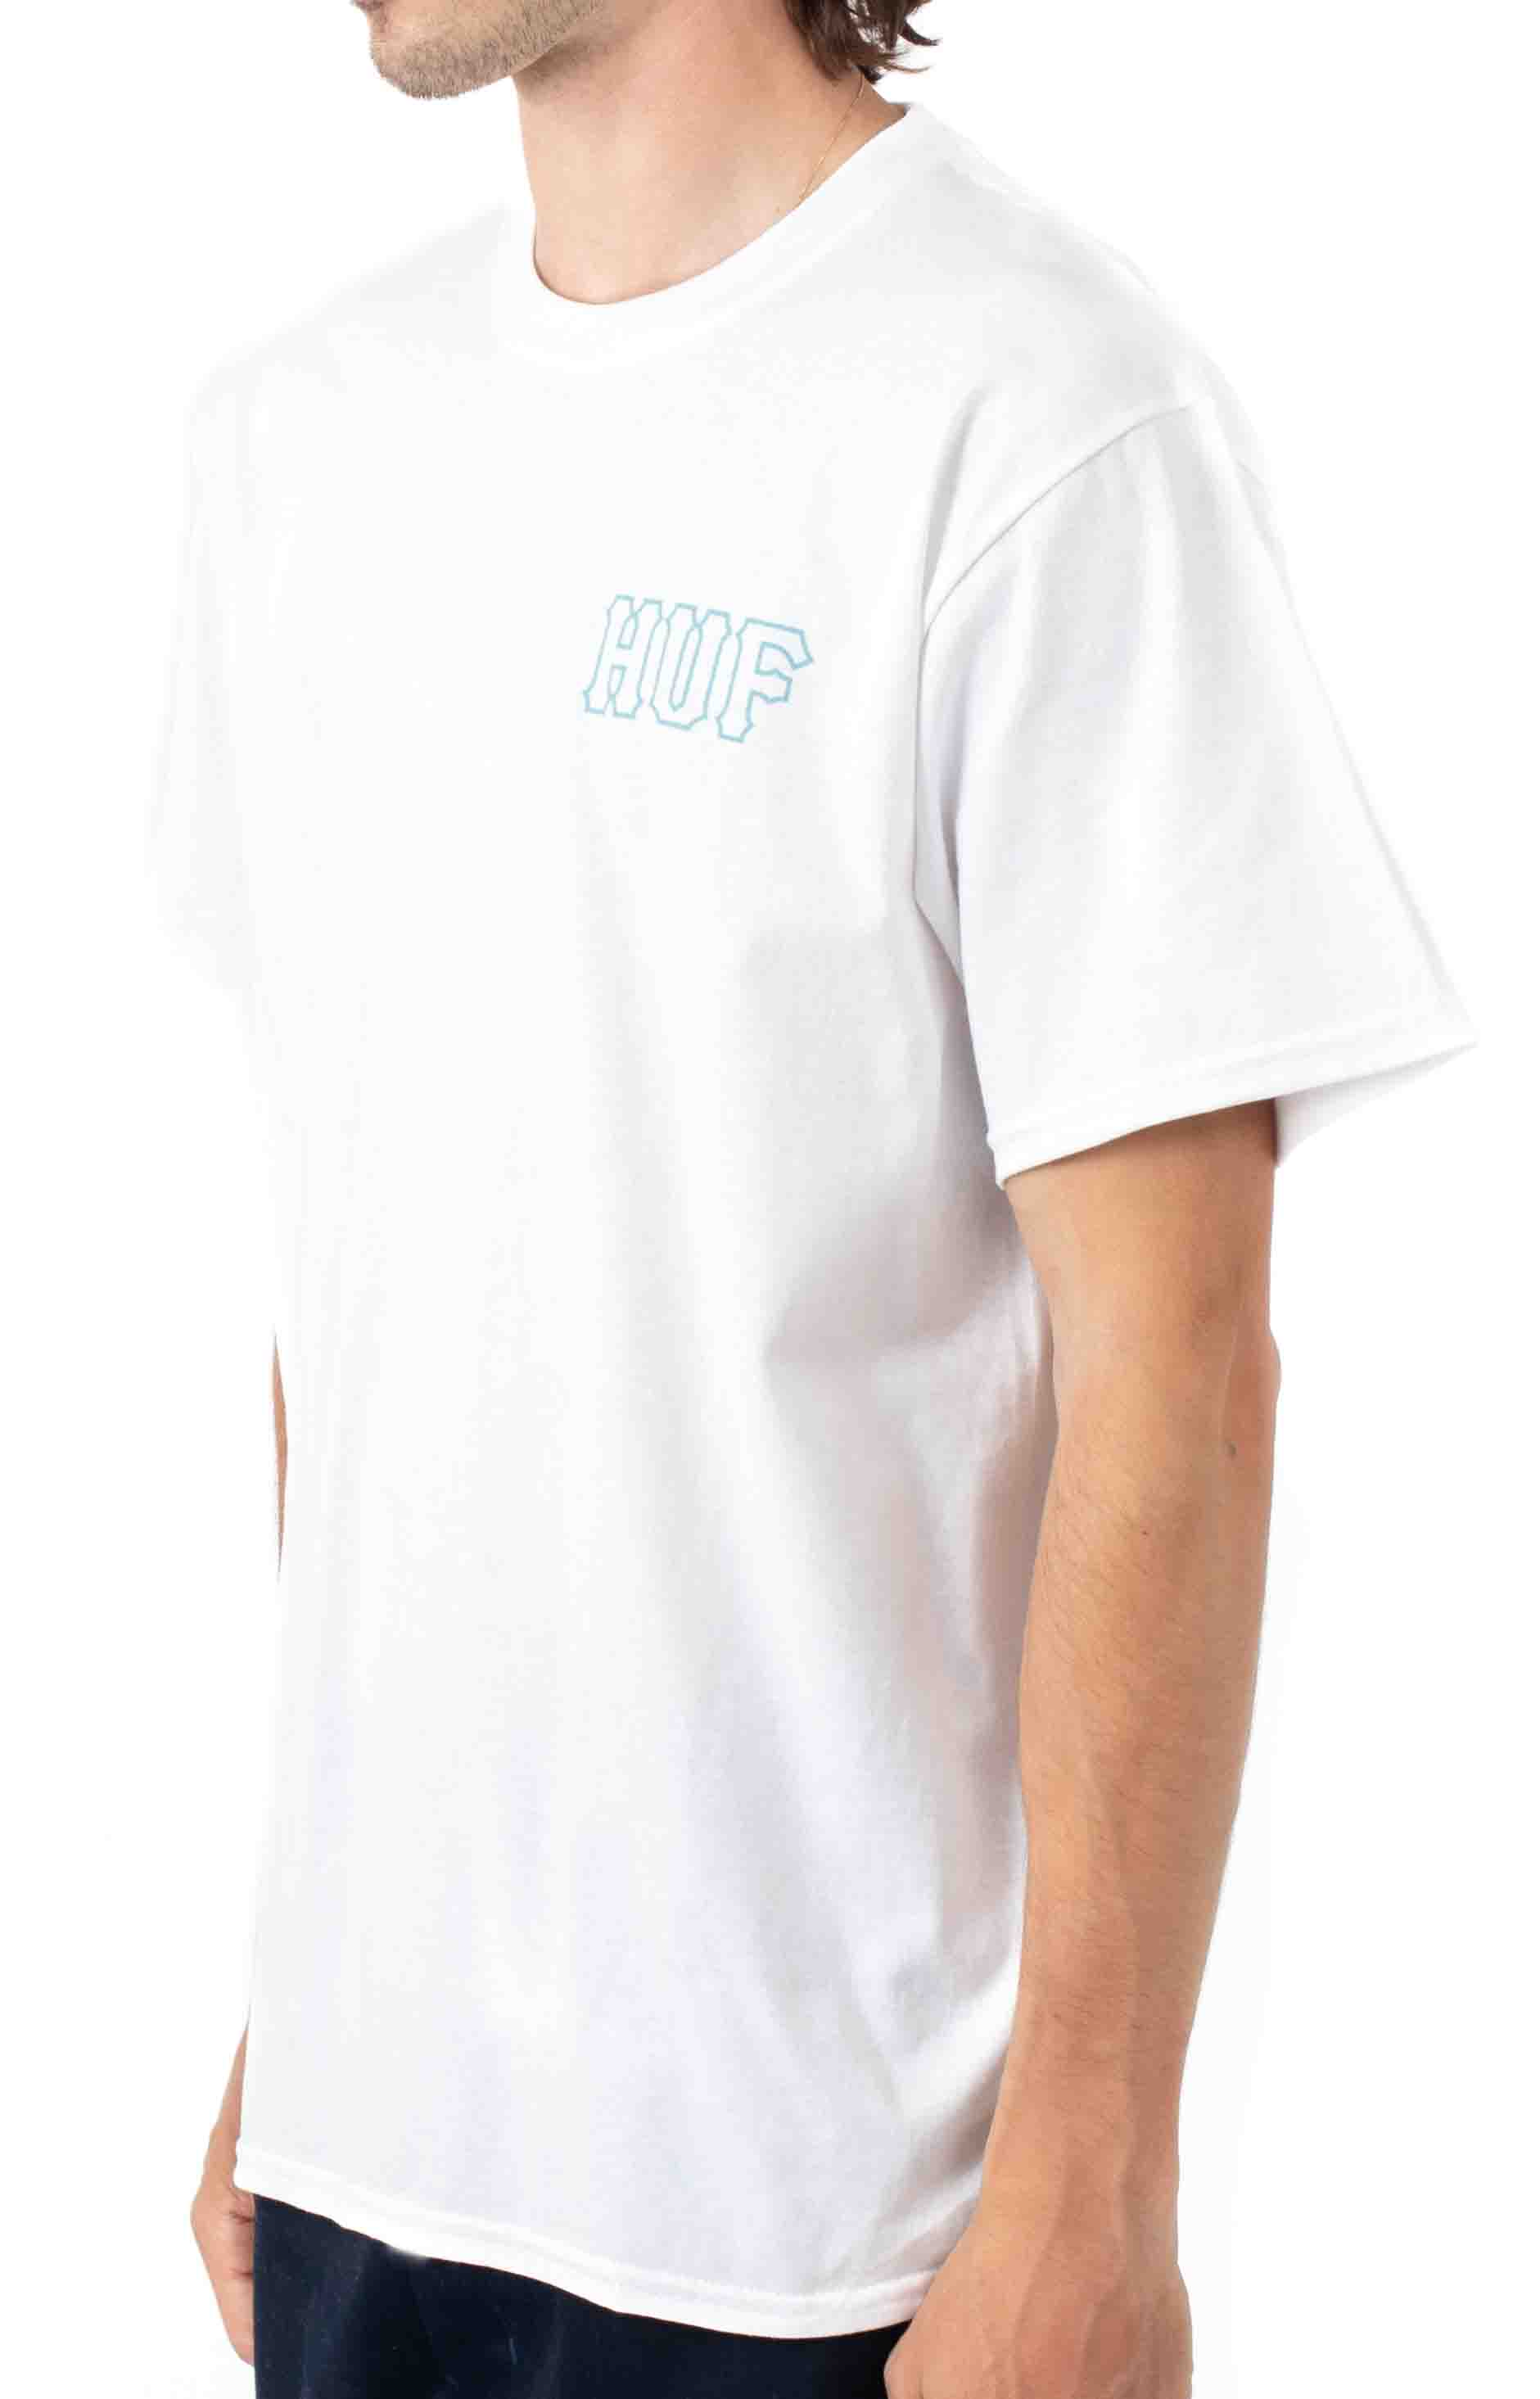 Barb Wire Classic H T-Shirt - White  3